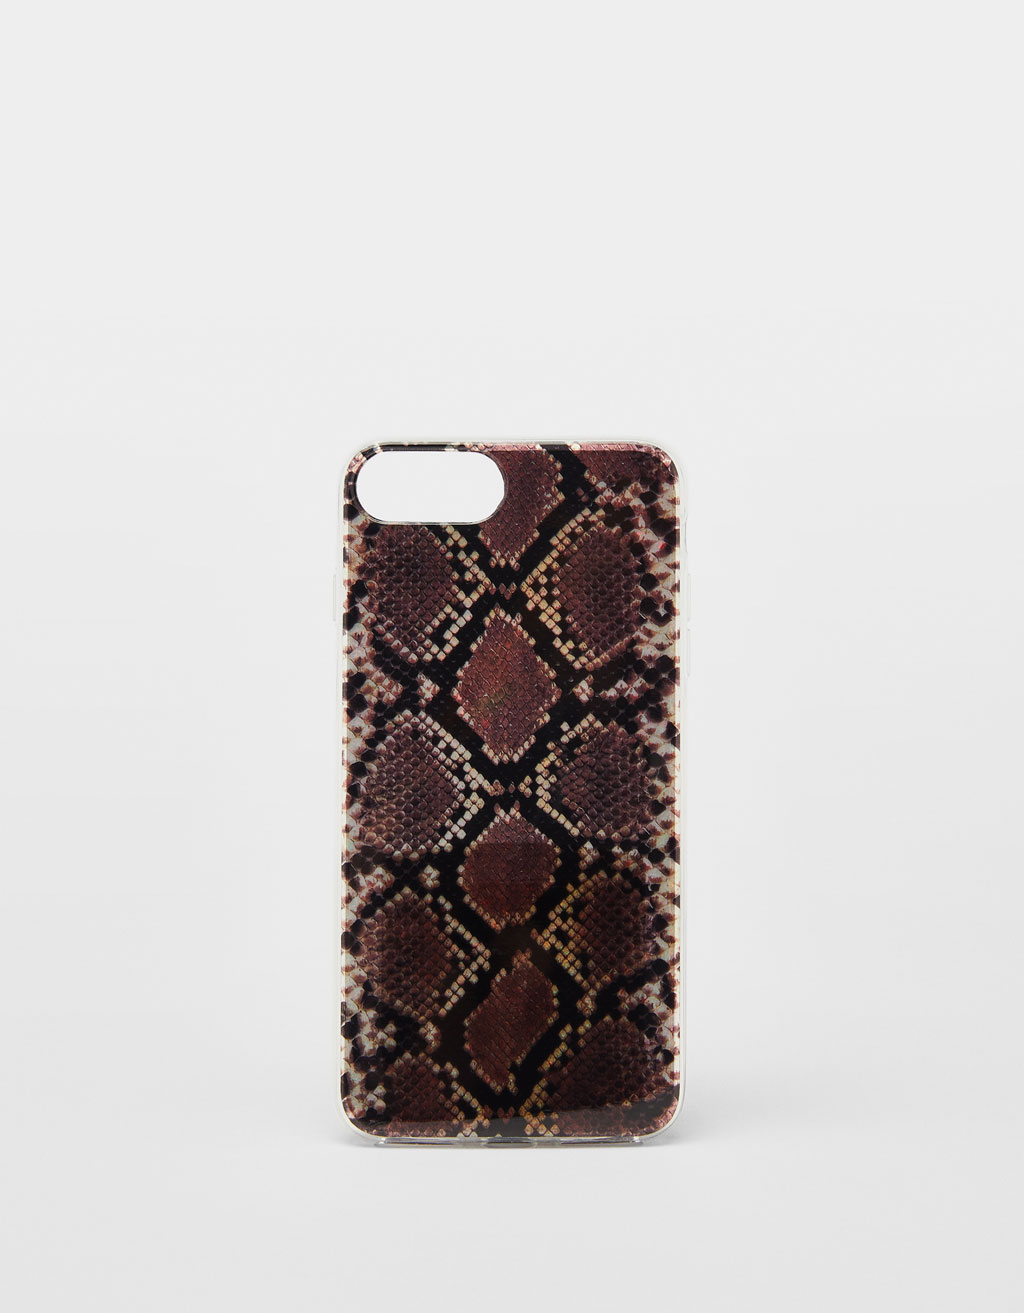 Cover med slangeprint iPhone 6 plus/ 7 plus / 8 plus